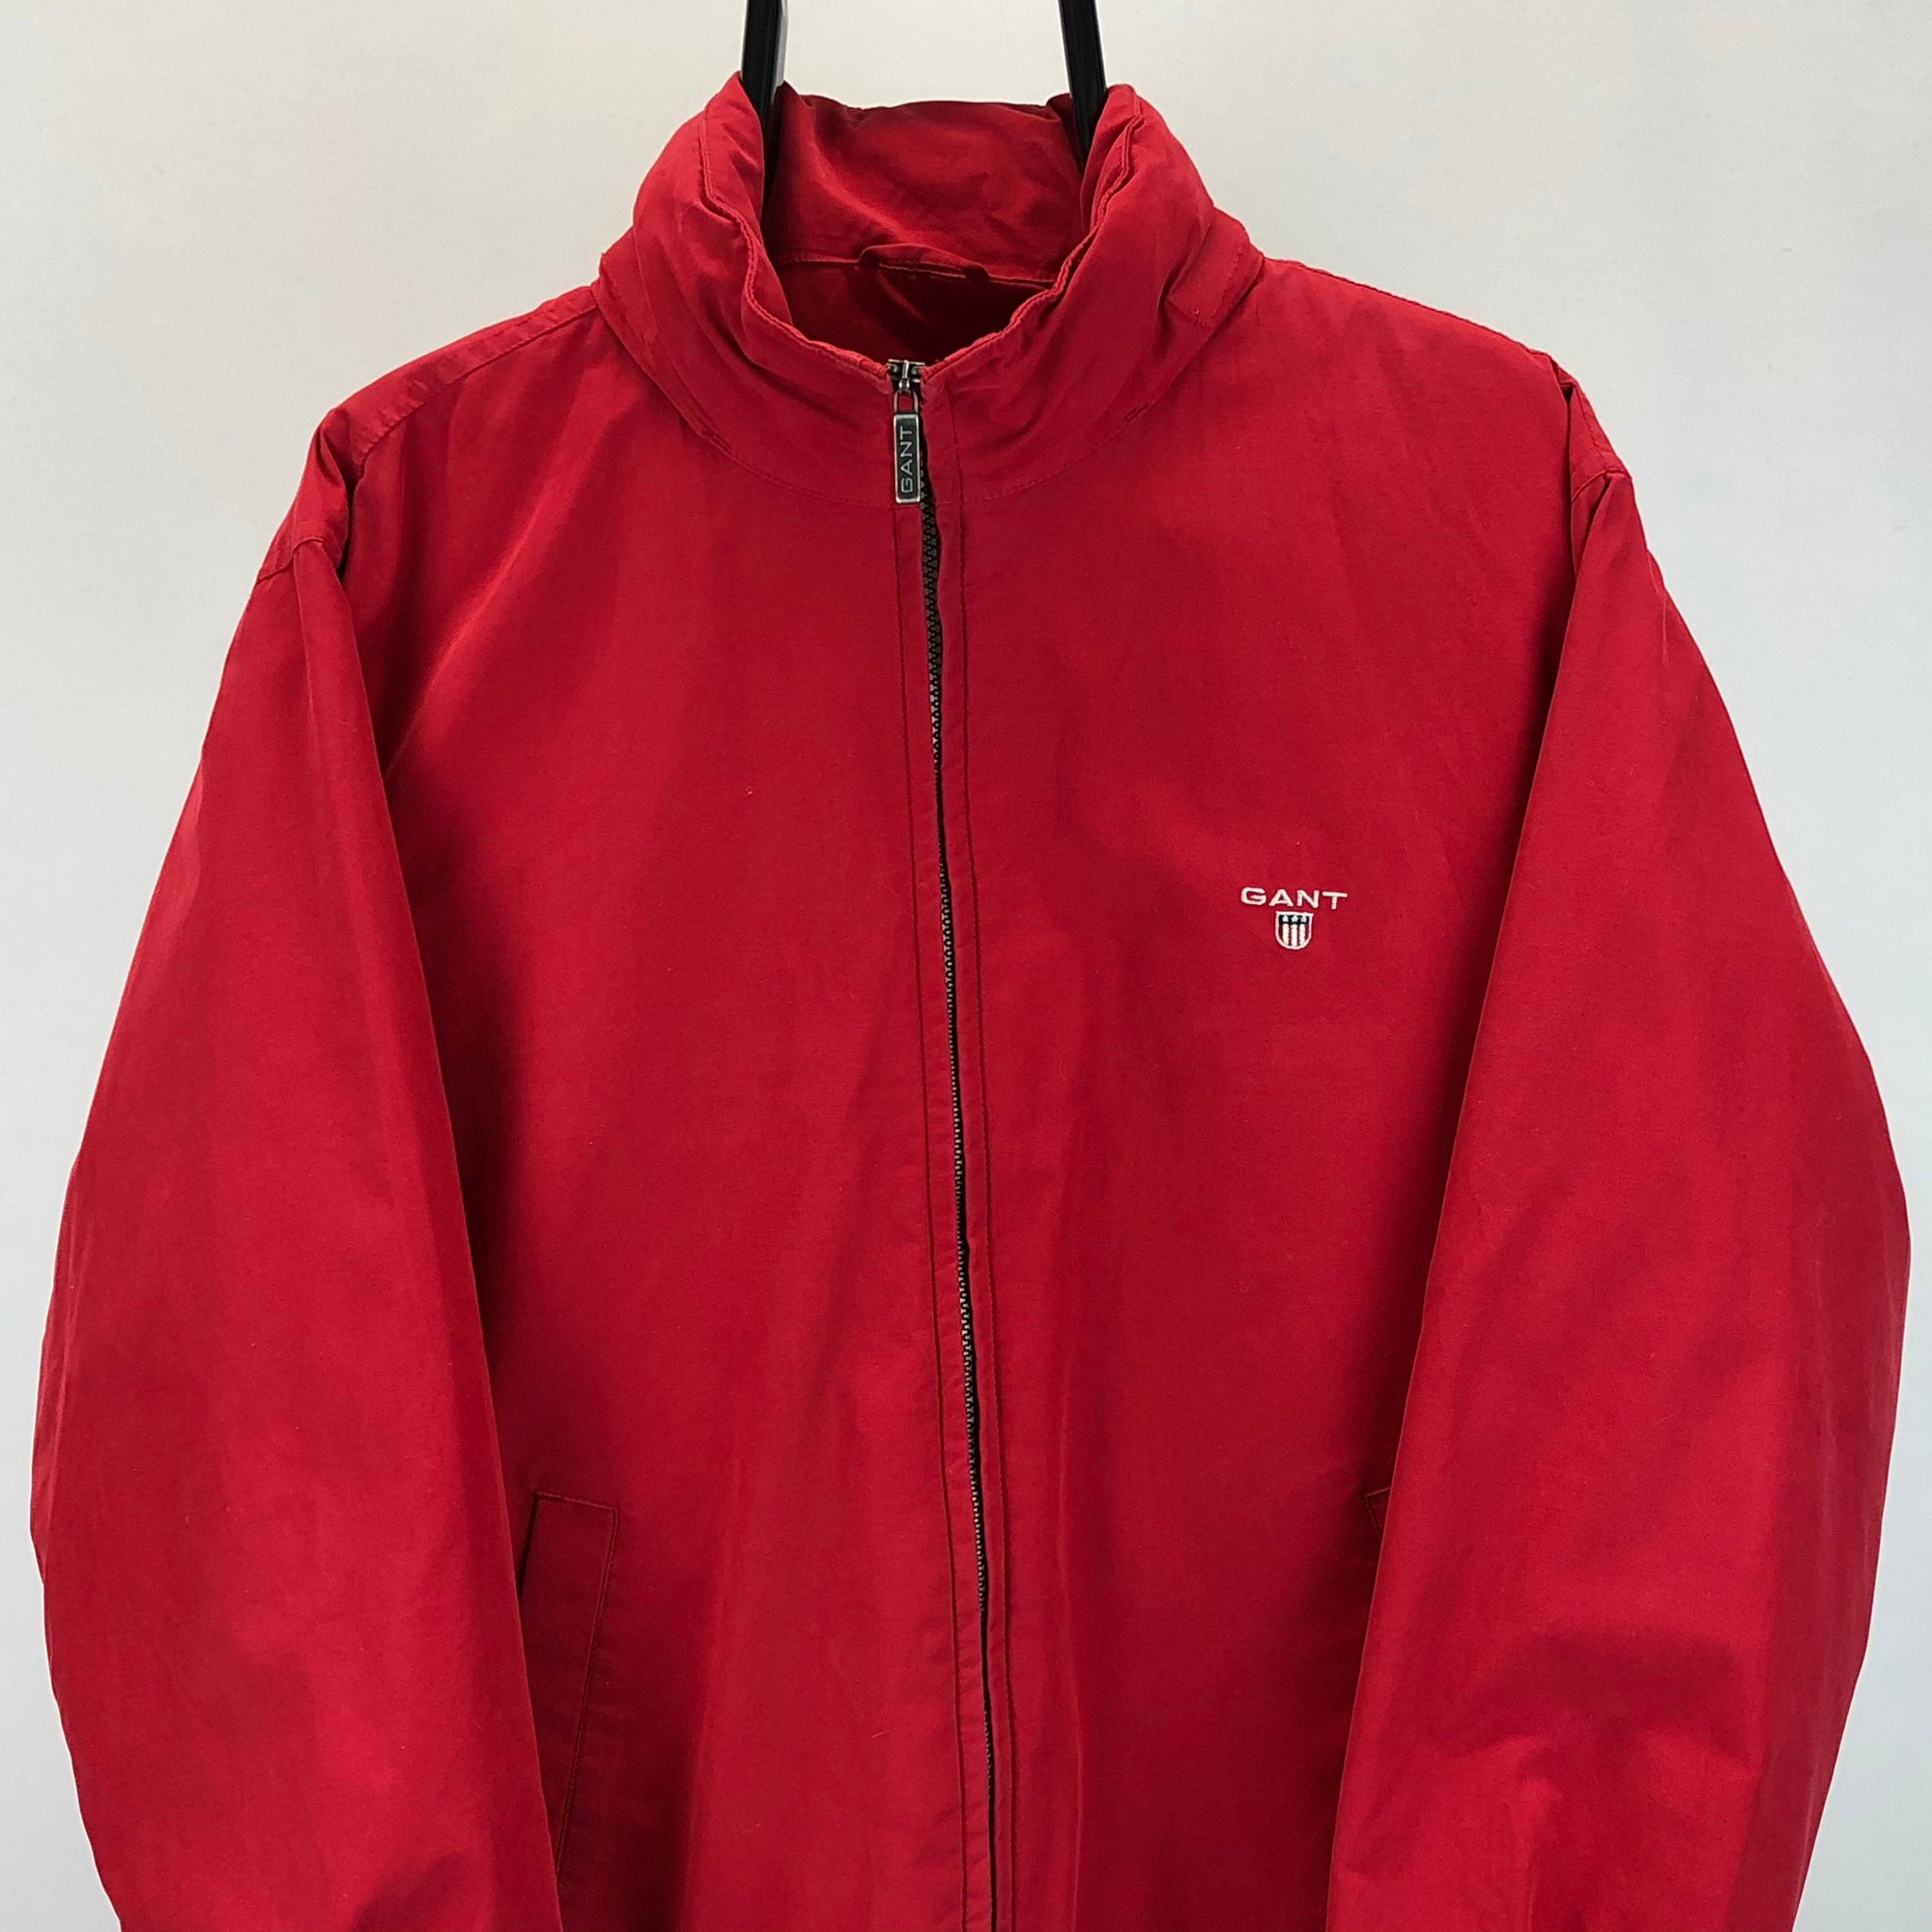 Gant Midlength Jacket With Retractable Hood in Red - Men's Medium/Women's Large